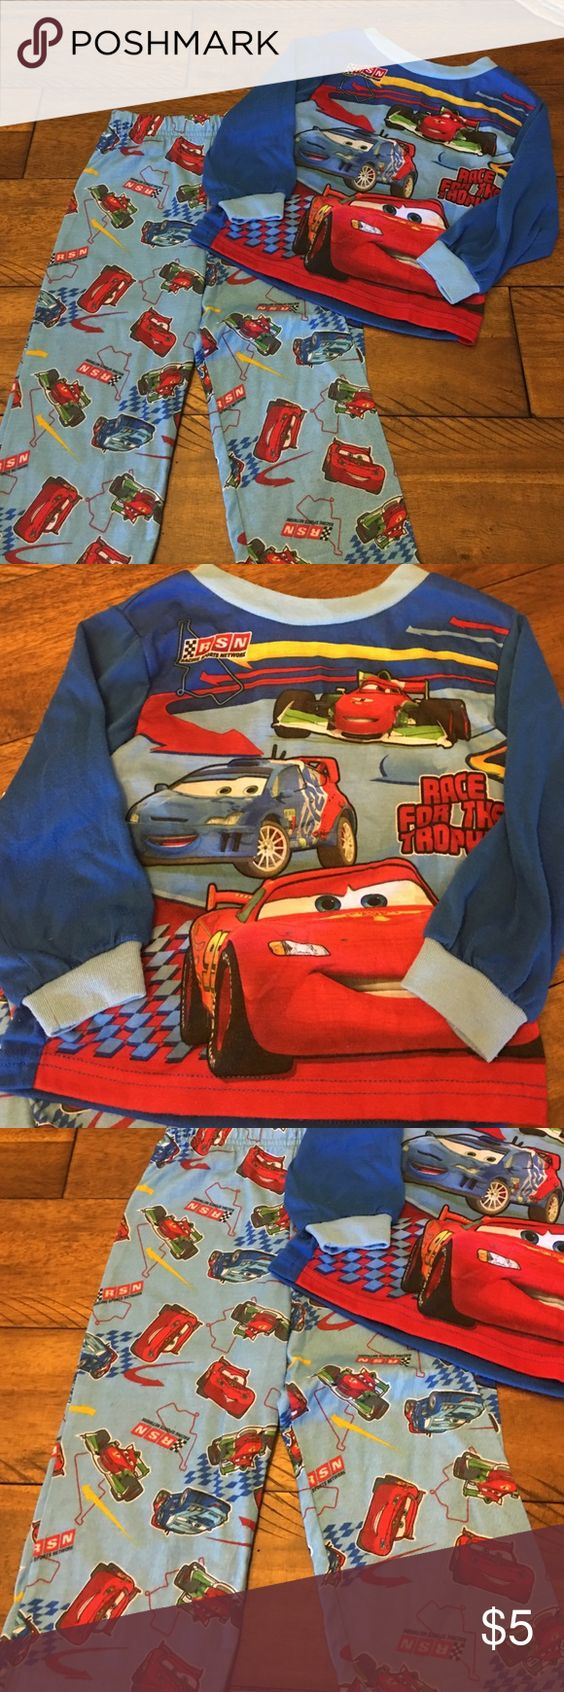 Cars Pajama Set Excellent condition!!!  Worn only once and my son decided he no longer liked Cars 😉 Disney Pajamas Pajama Sets